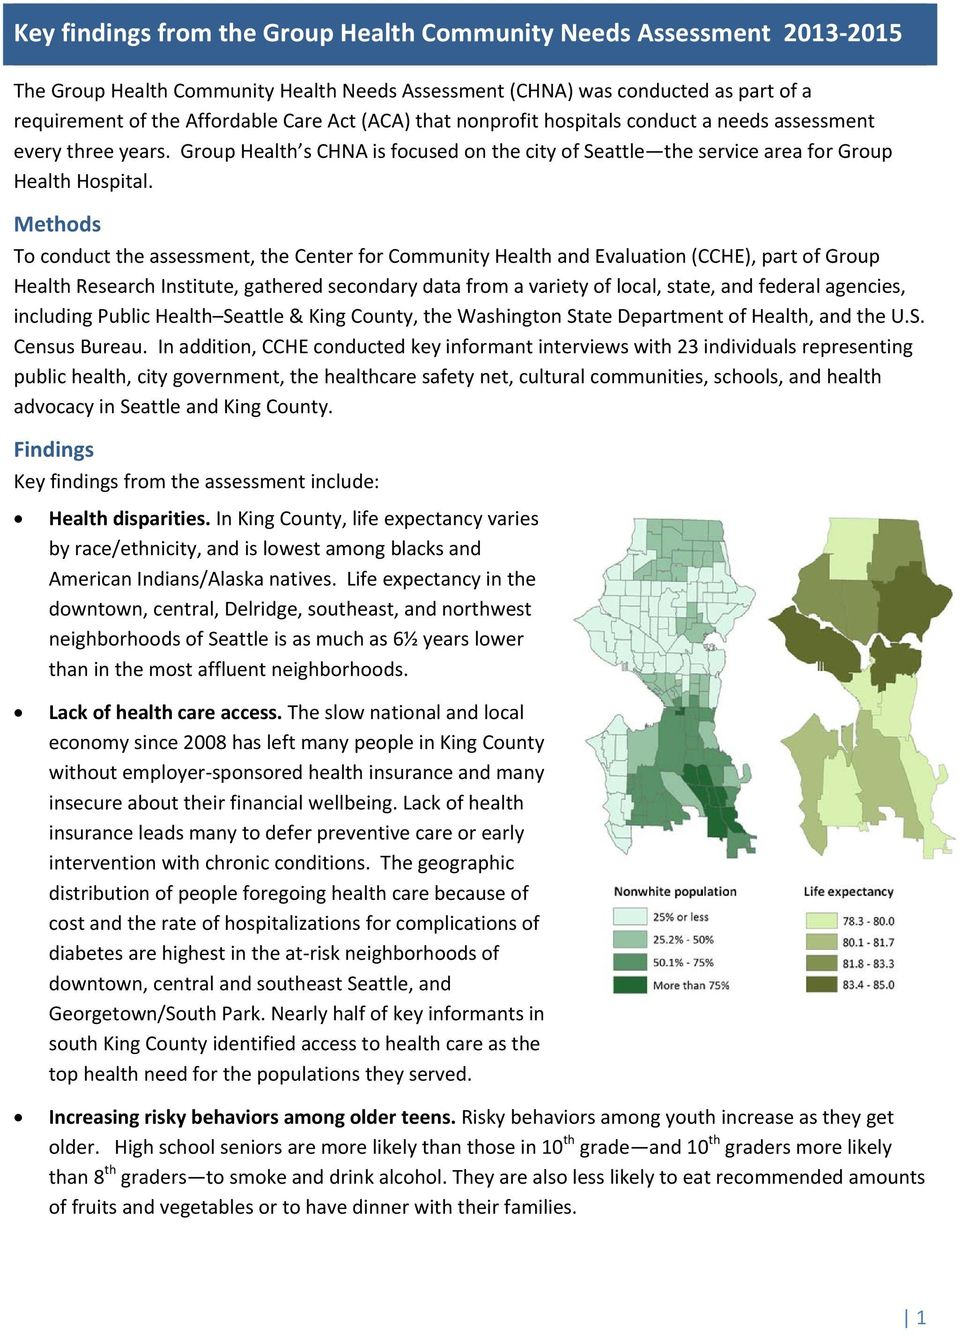 Methods To conduct the assessment, the Center for Community Health and Evaluation (CCHE), part of Group Health Research Institute, gathered secondary data from a variety of local, state, and federal